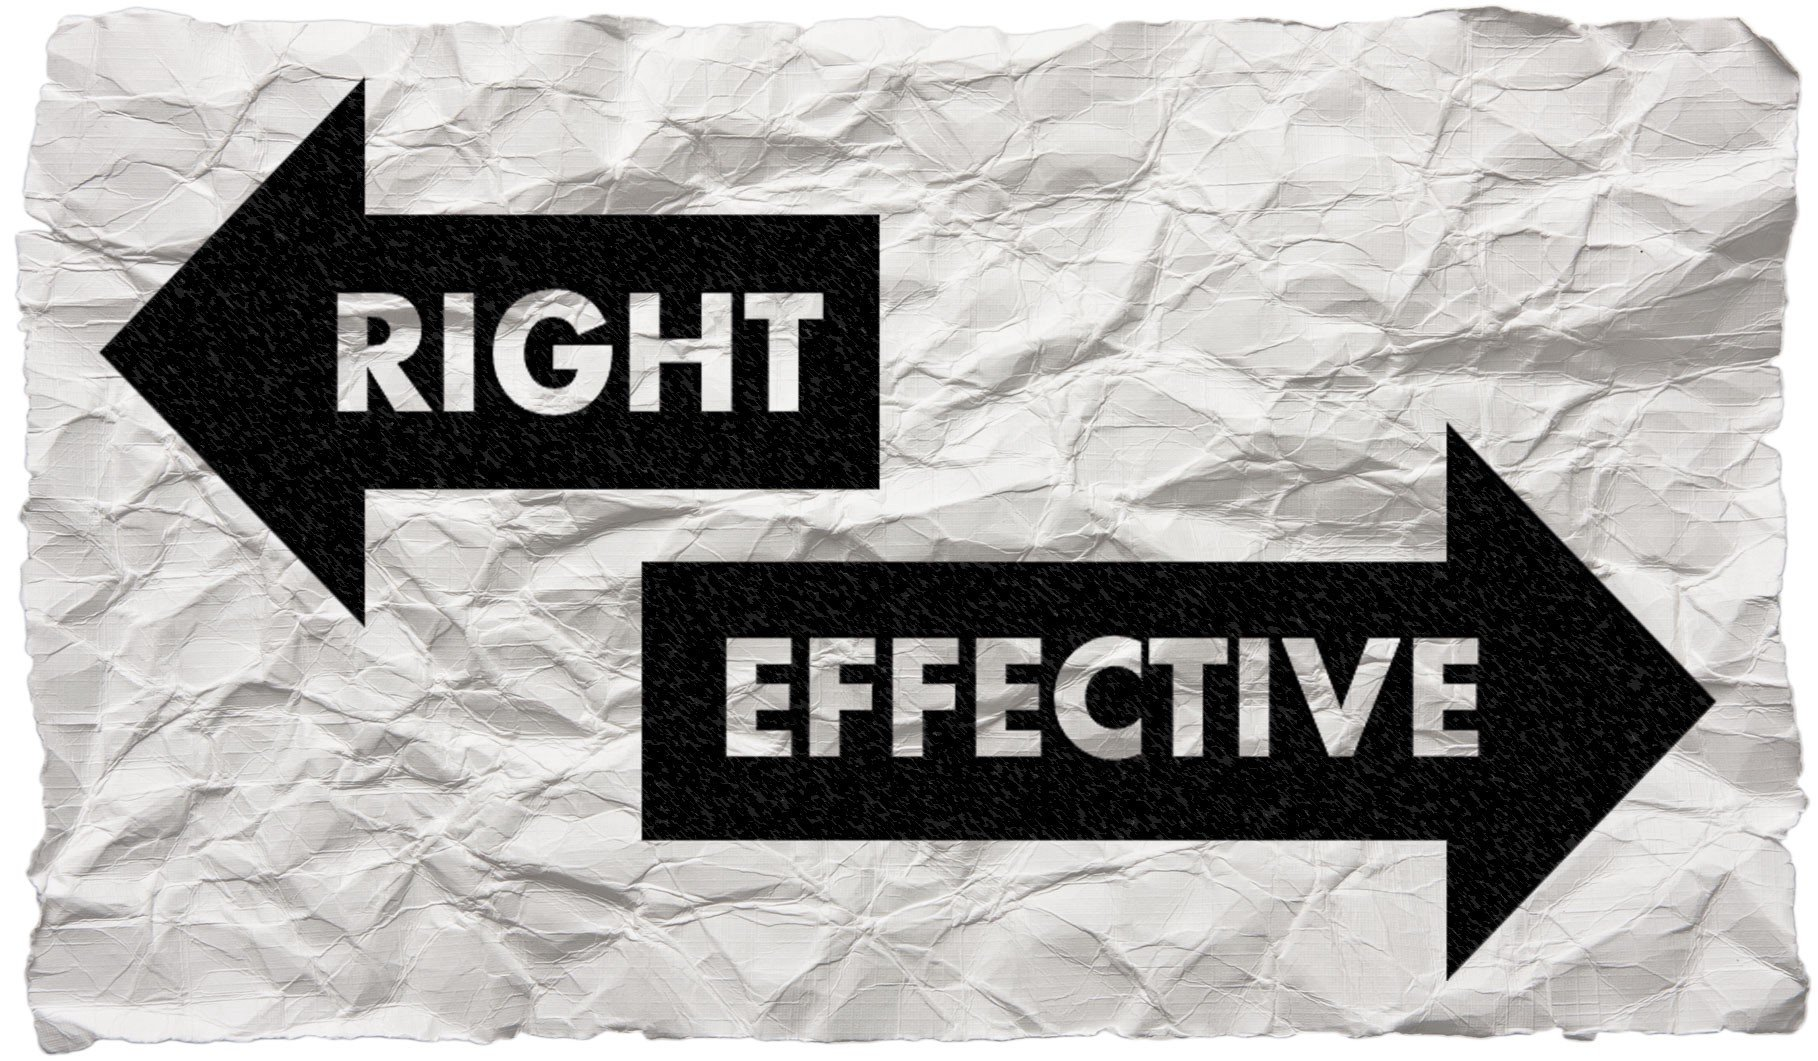 Would you rather be right or effective?